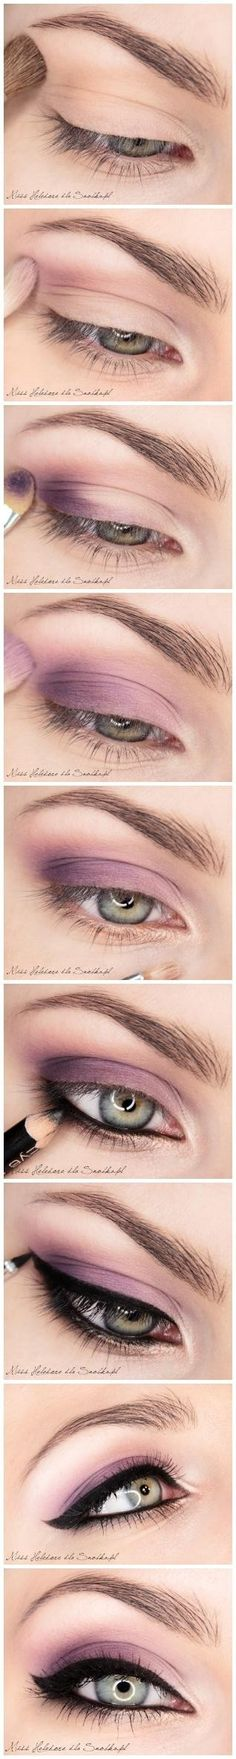 More makeup tutorials on http://pinmakeuptips.com/the-secret-of-lash-curling/